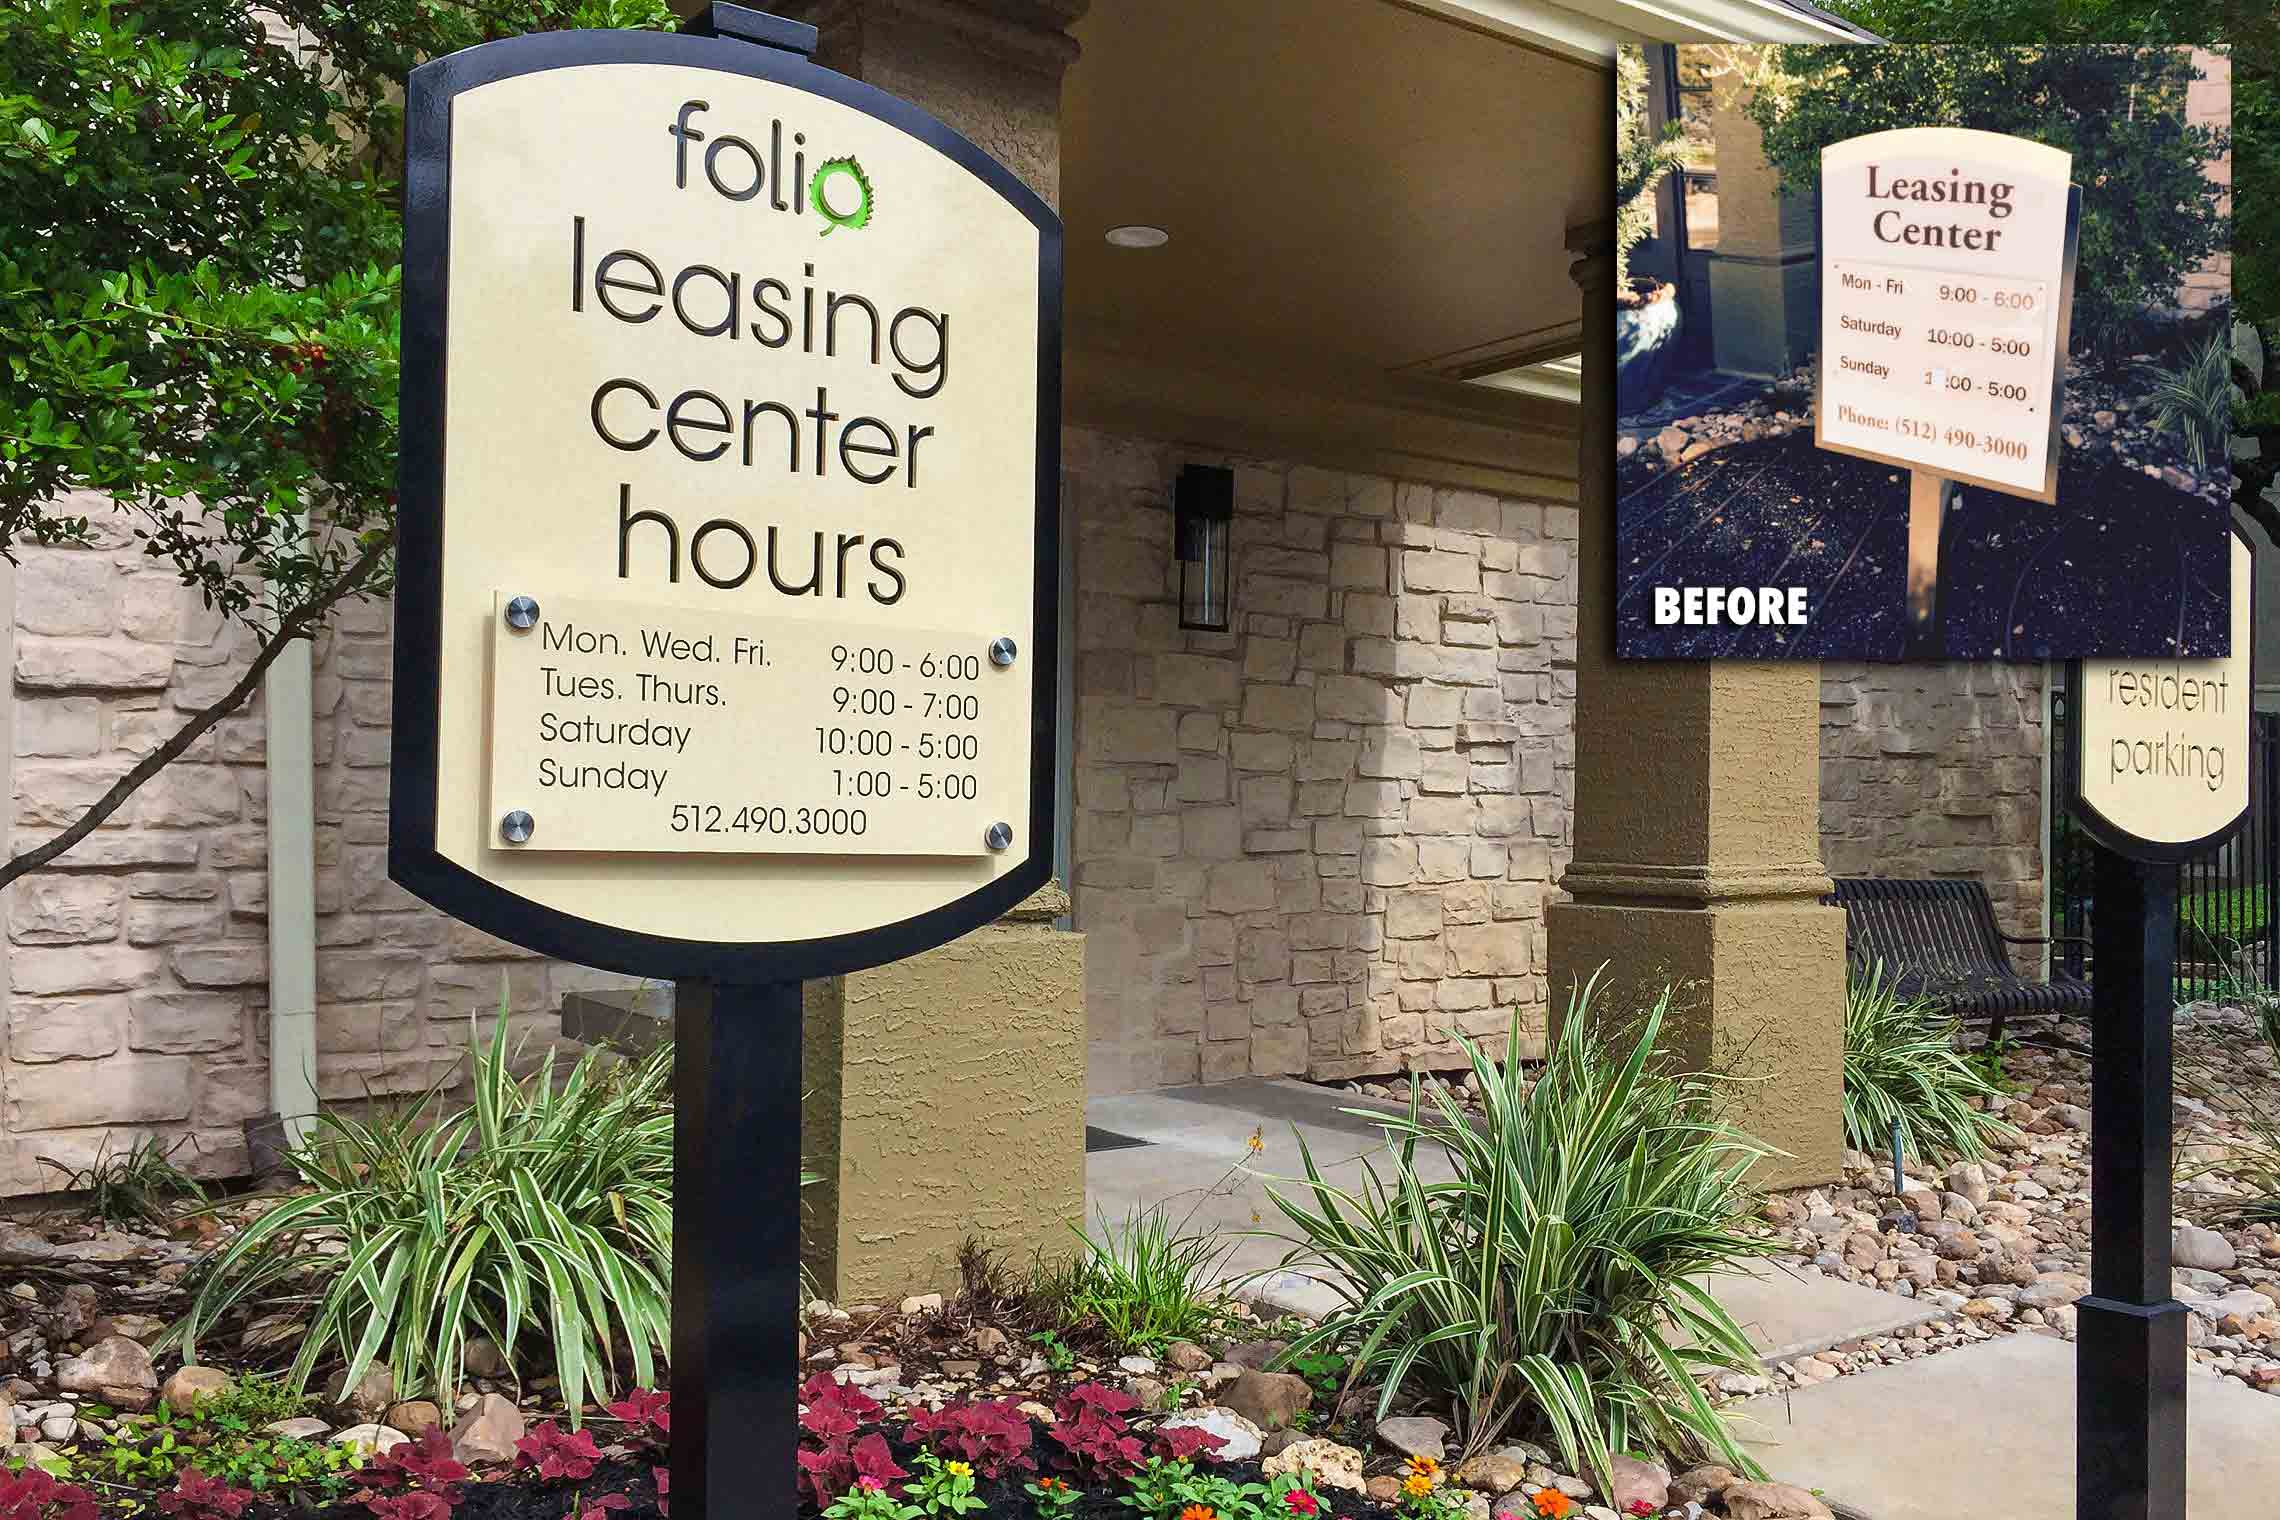 Folio Apartment Homes Leasing Center Hours with Stand-Offs and Future Resident Parking Sign on Post